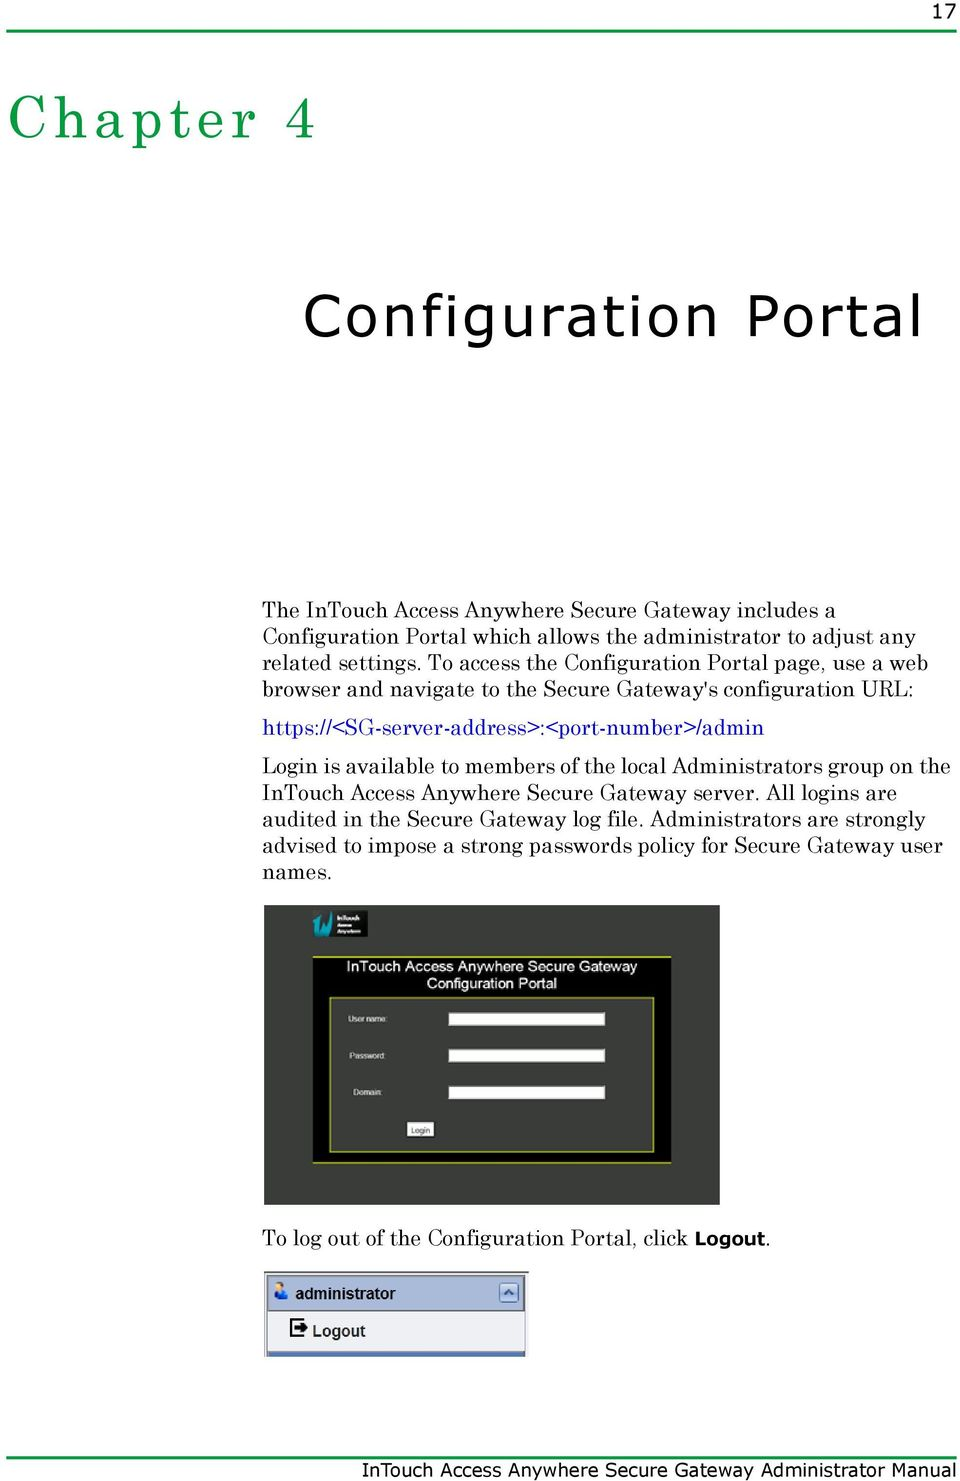 To access the Configuration Portal page, use a web browser and navigate to the Secure Gateway's configuration URL: https://<sg-server-address>:<port-number>/admin